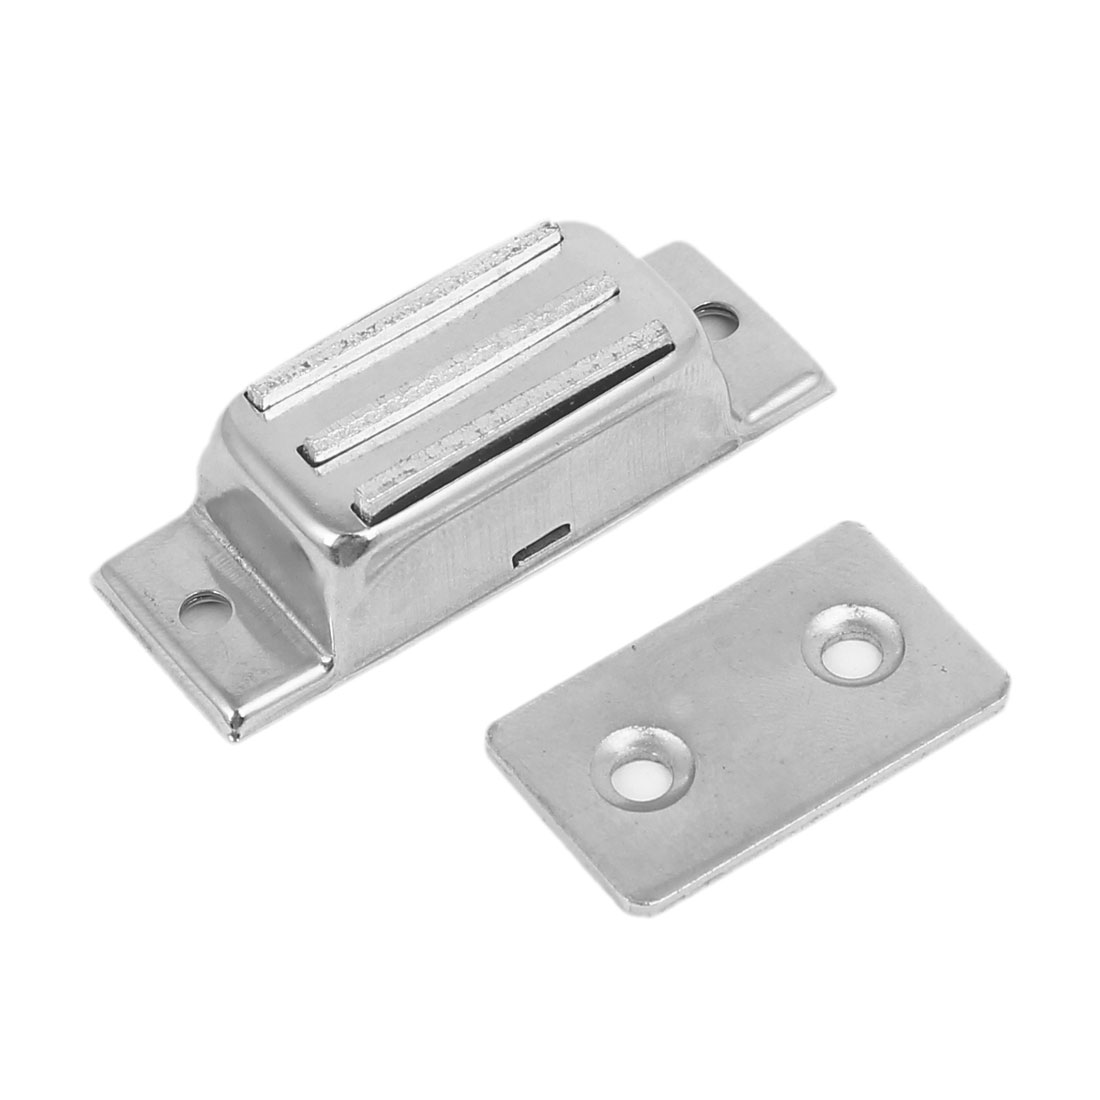 Cabinet Stainless Steel Magnetic Catch Door Latch Silver Tone 50mm x 20mm x 15mm